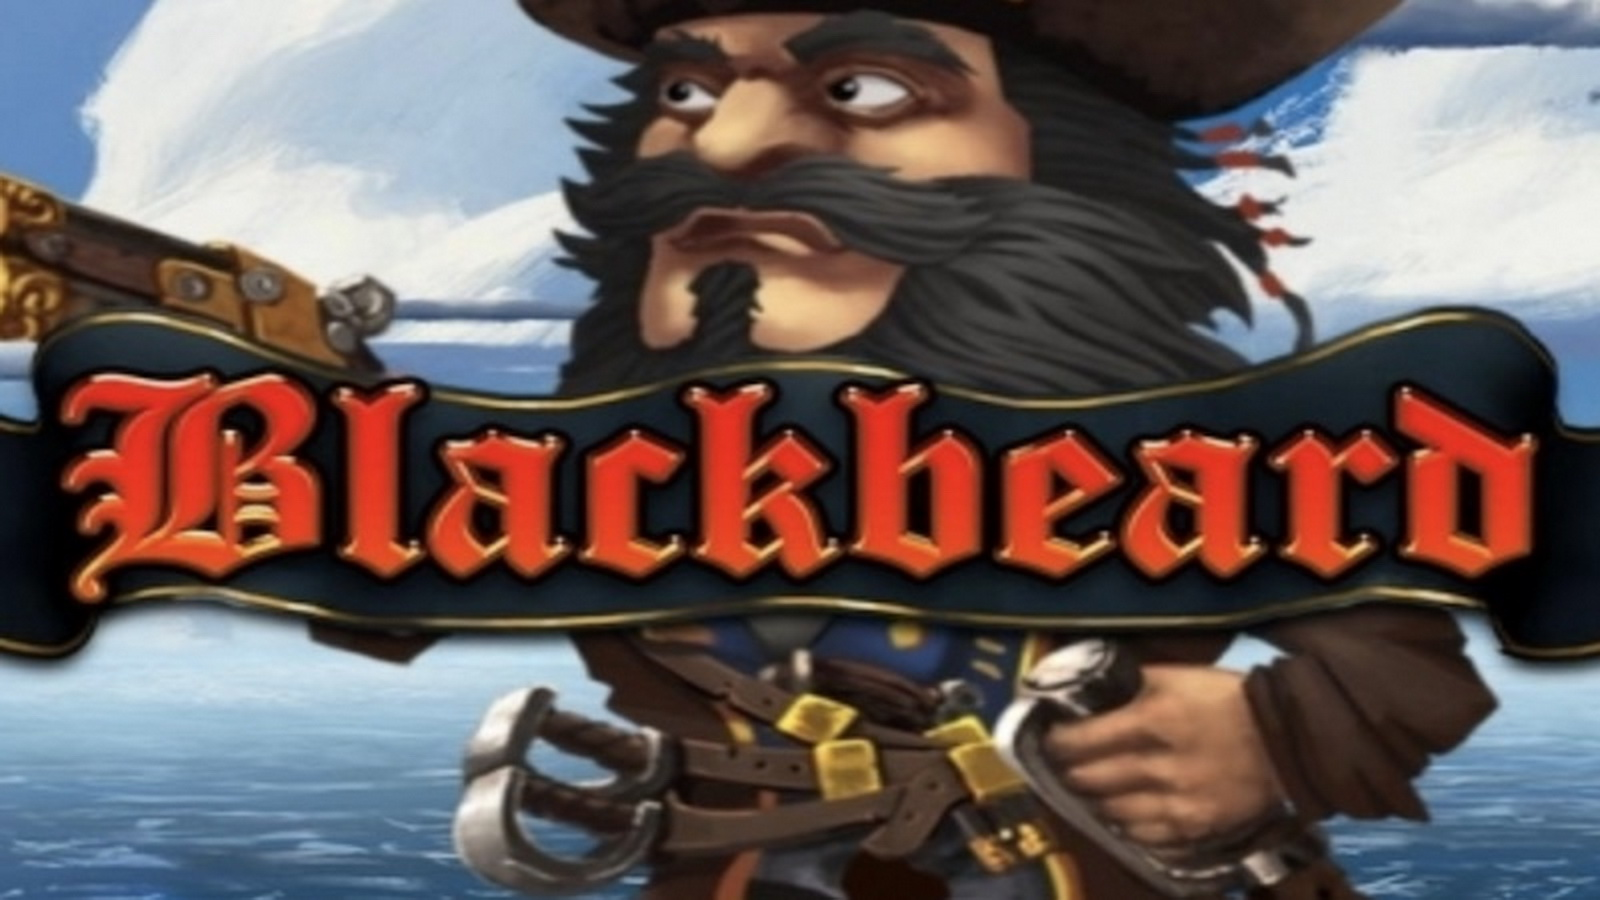 The Blackbeard (Bulletproof Games) Online Slot Demo Game by Bulletproof Games